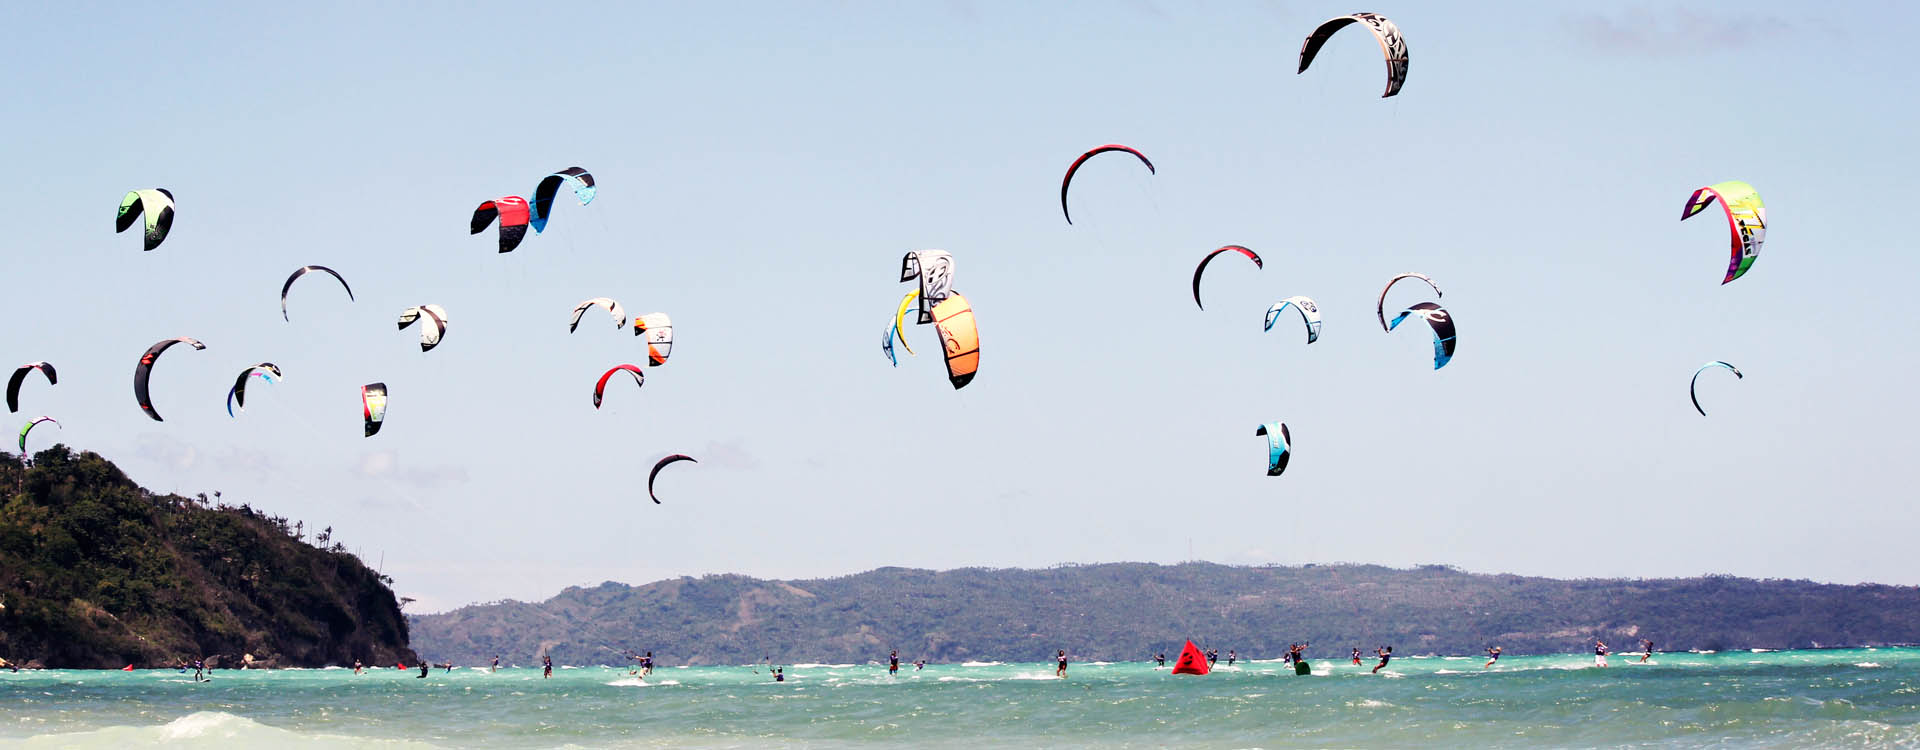 Tutoriale Kiteboarding